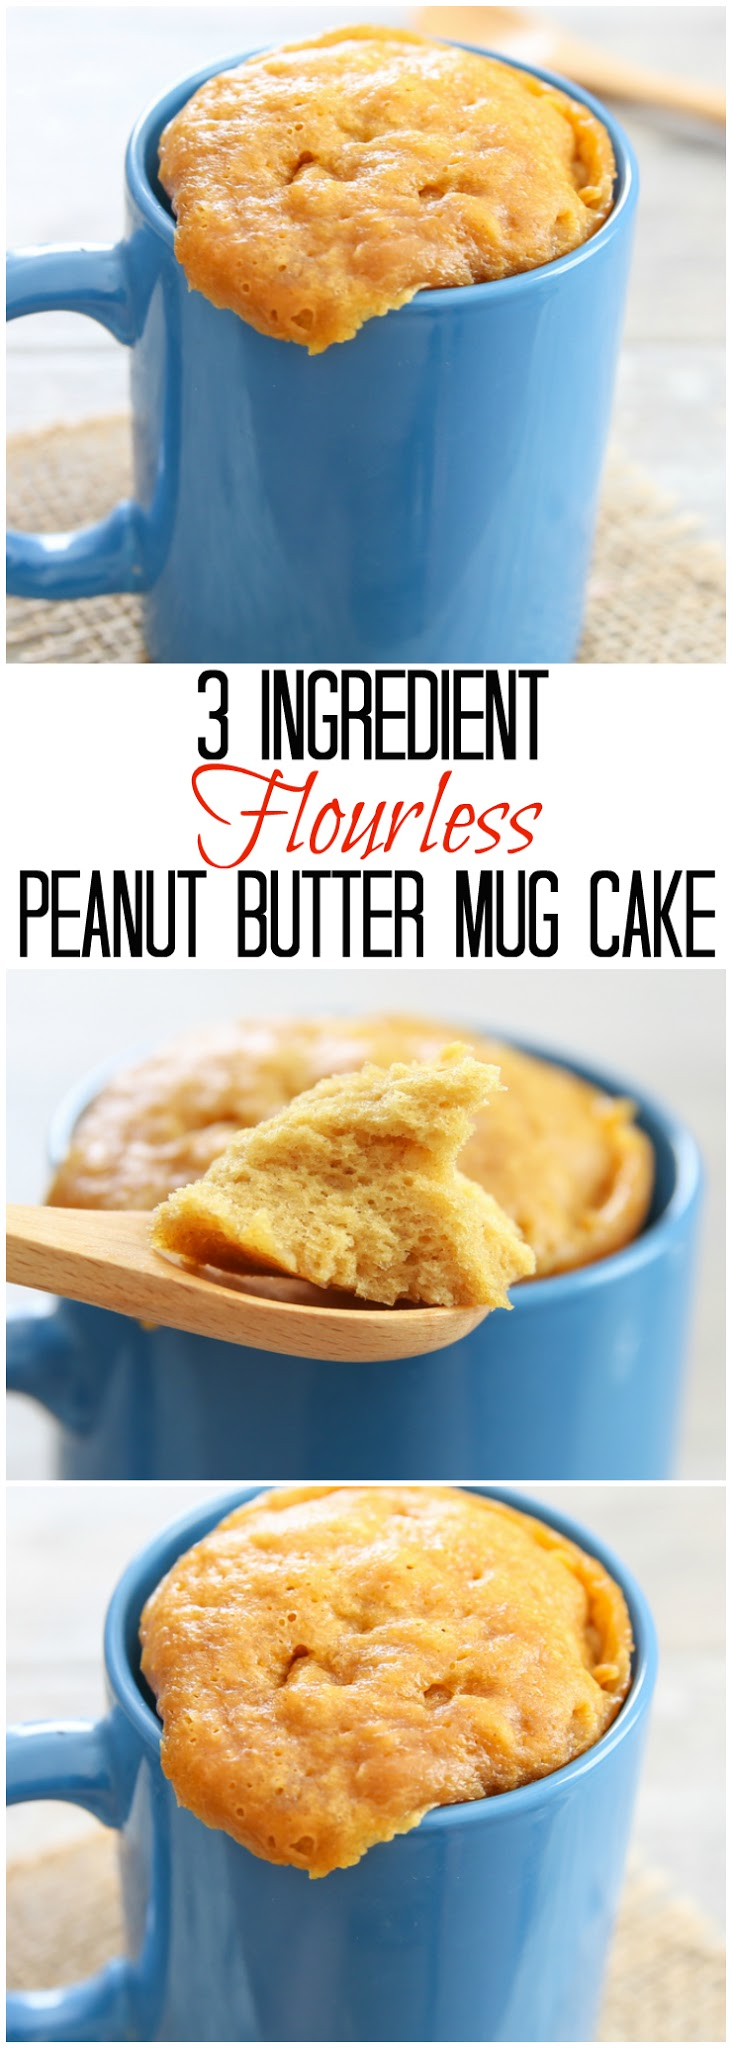 3 Ingredient Flourless Peanut Butter Mug Cake Kirbies Cravings